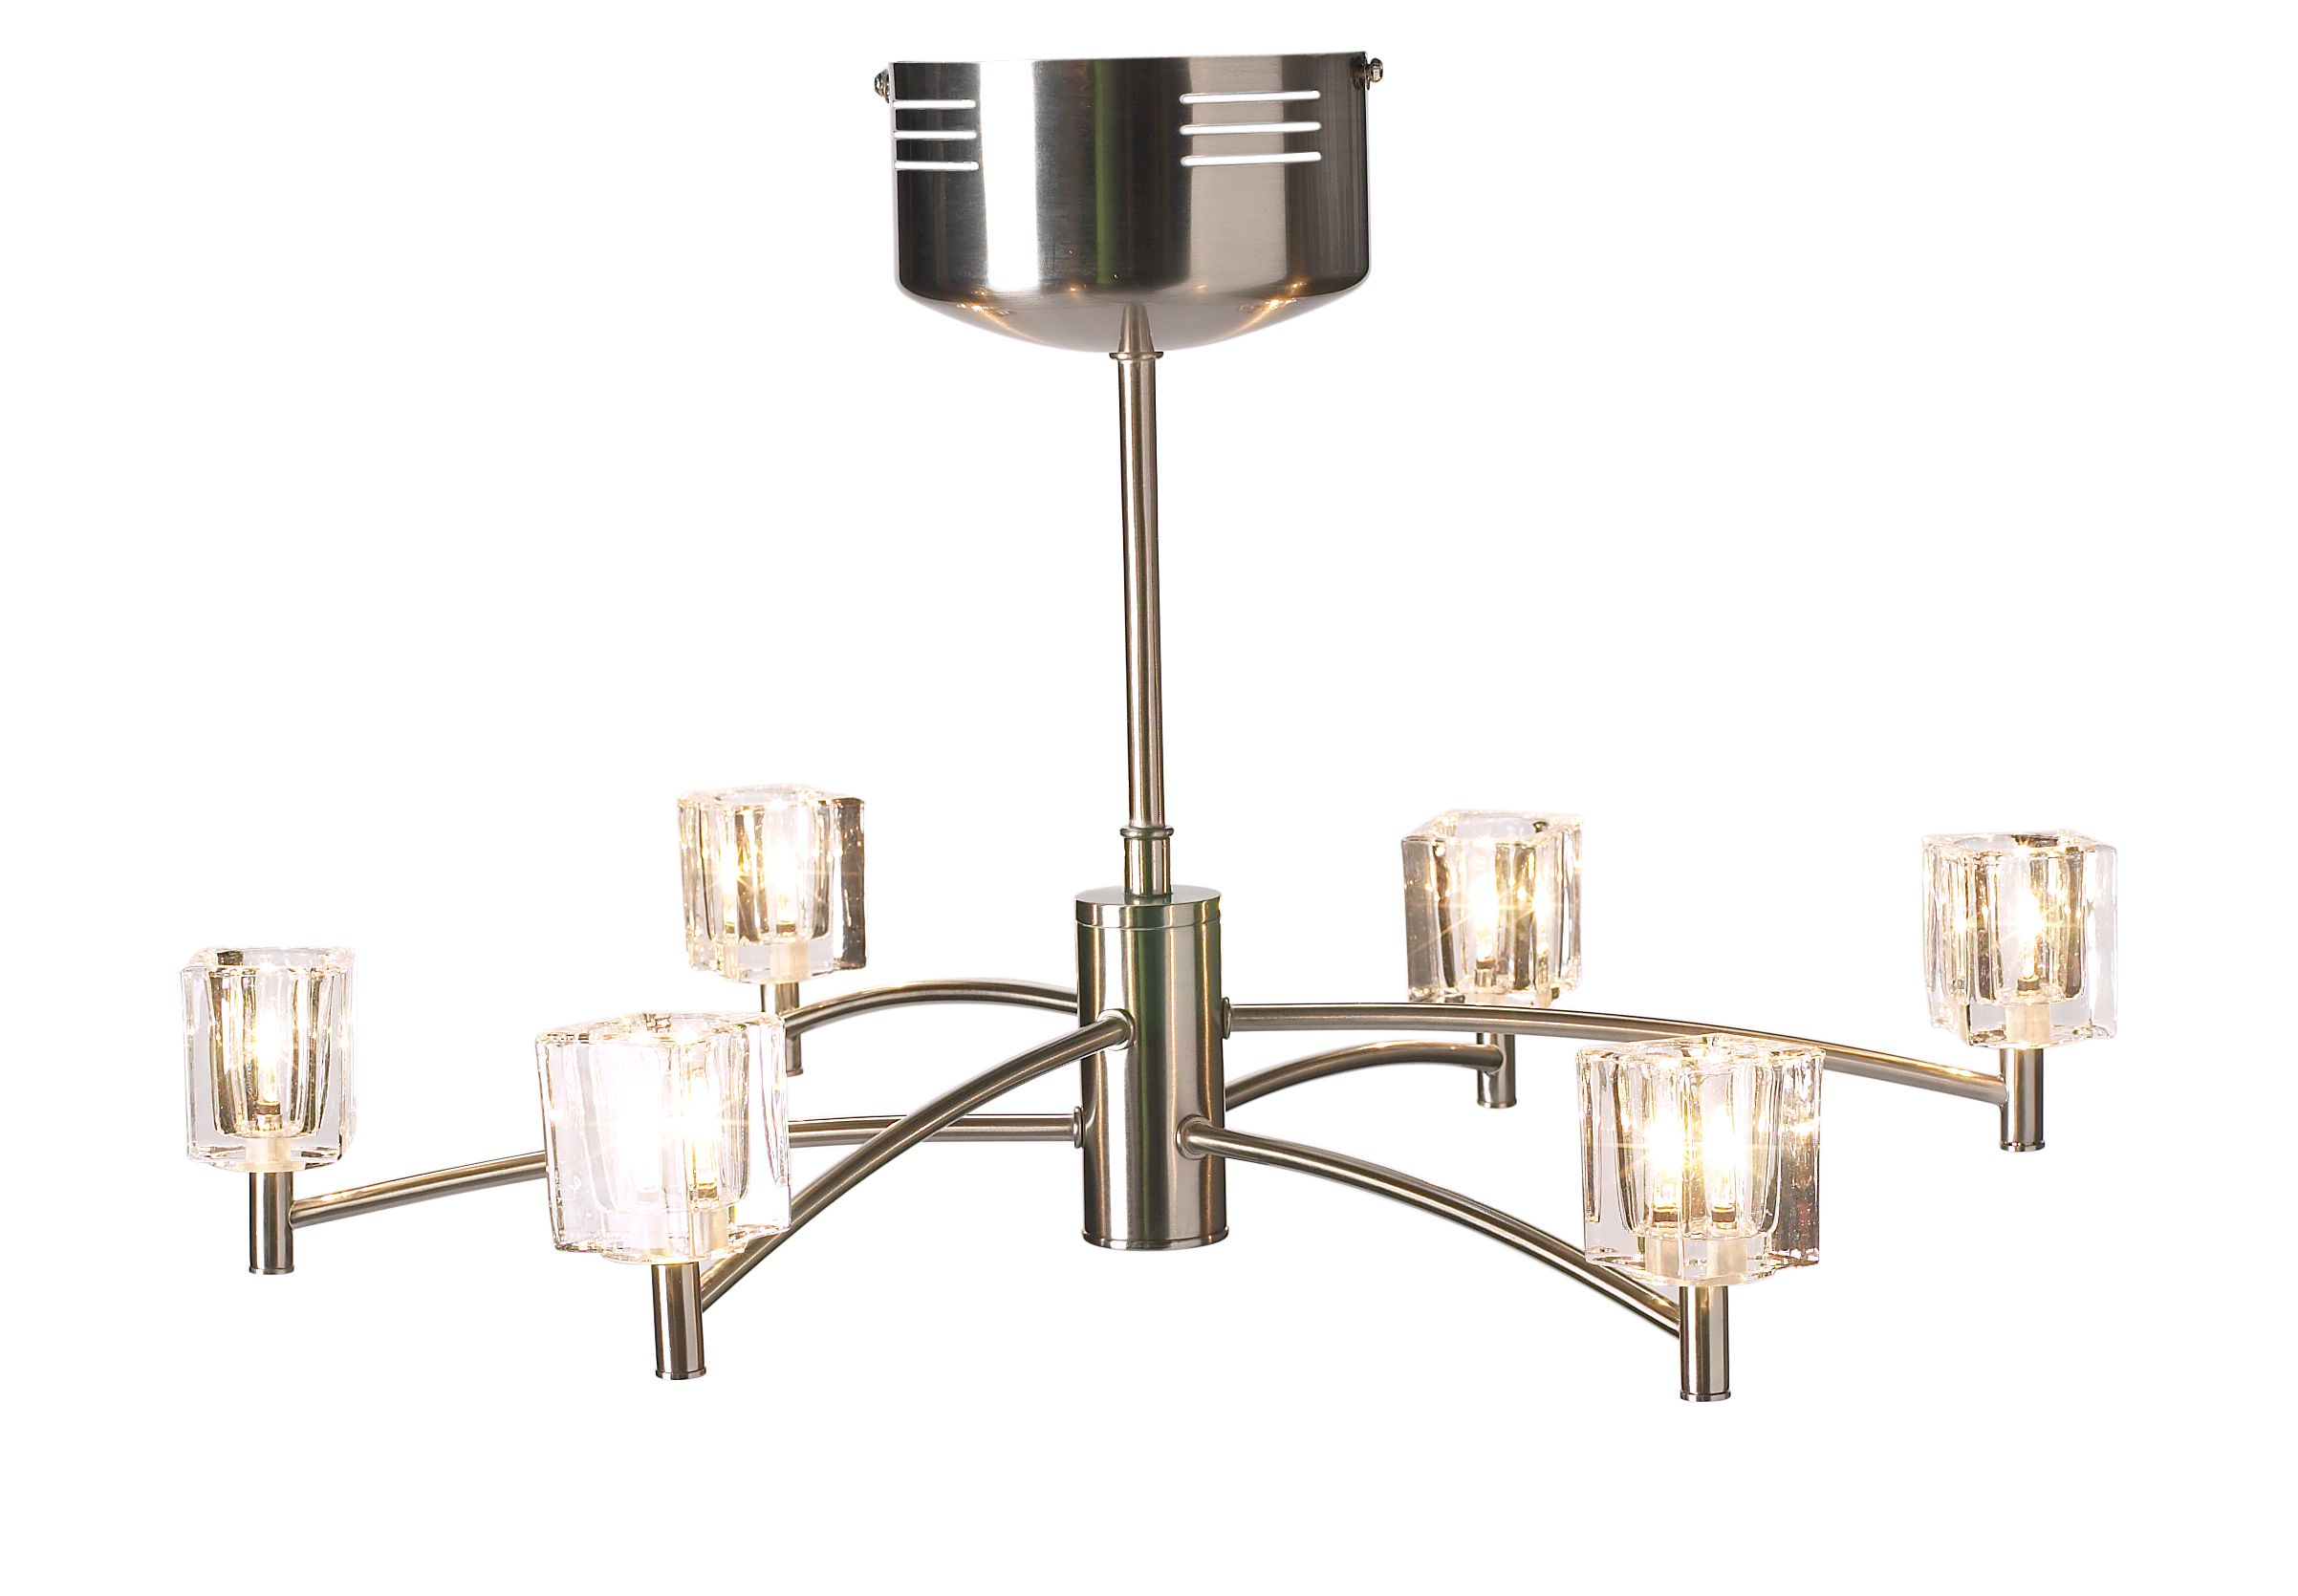 Ceiling Lights House Of Fraser : House of fraser ice cube arm ceiling pendant review